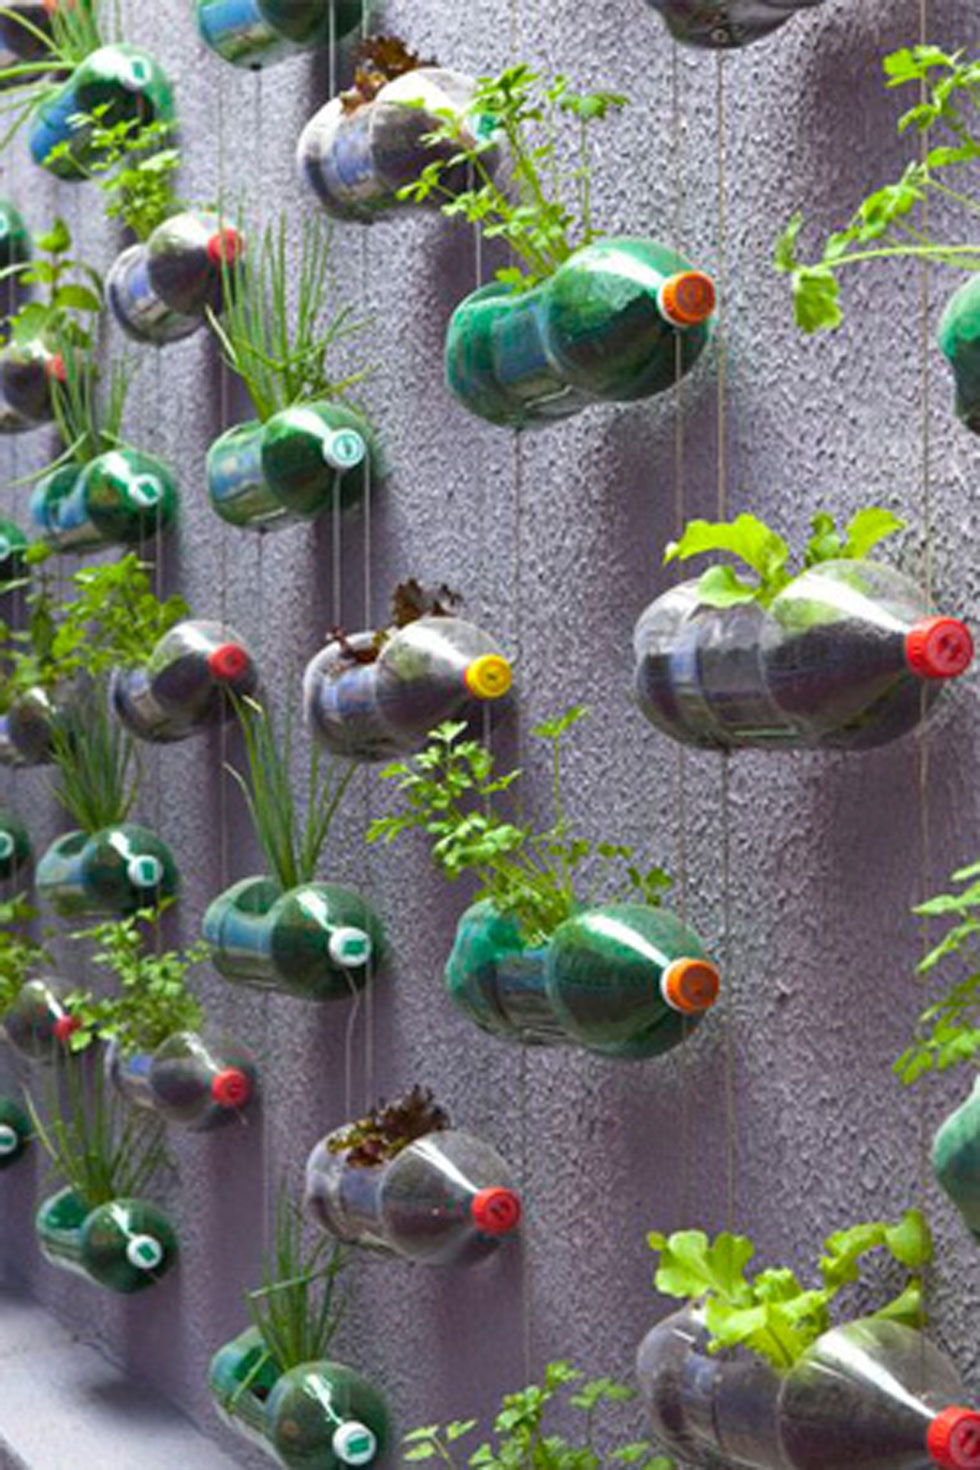 Vertical Gardening Ideas 6 repurpose old items for a fresh new look 26 Creative Ways To Plant A Vertical Garden How To Make A Vertical Garden